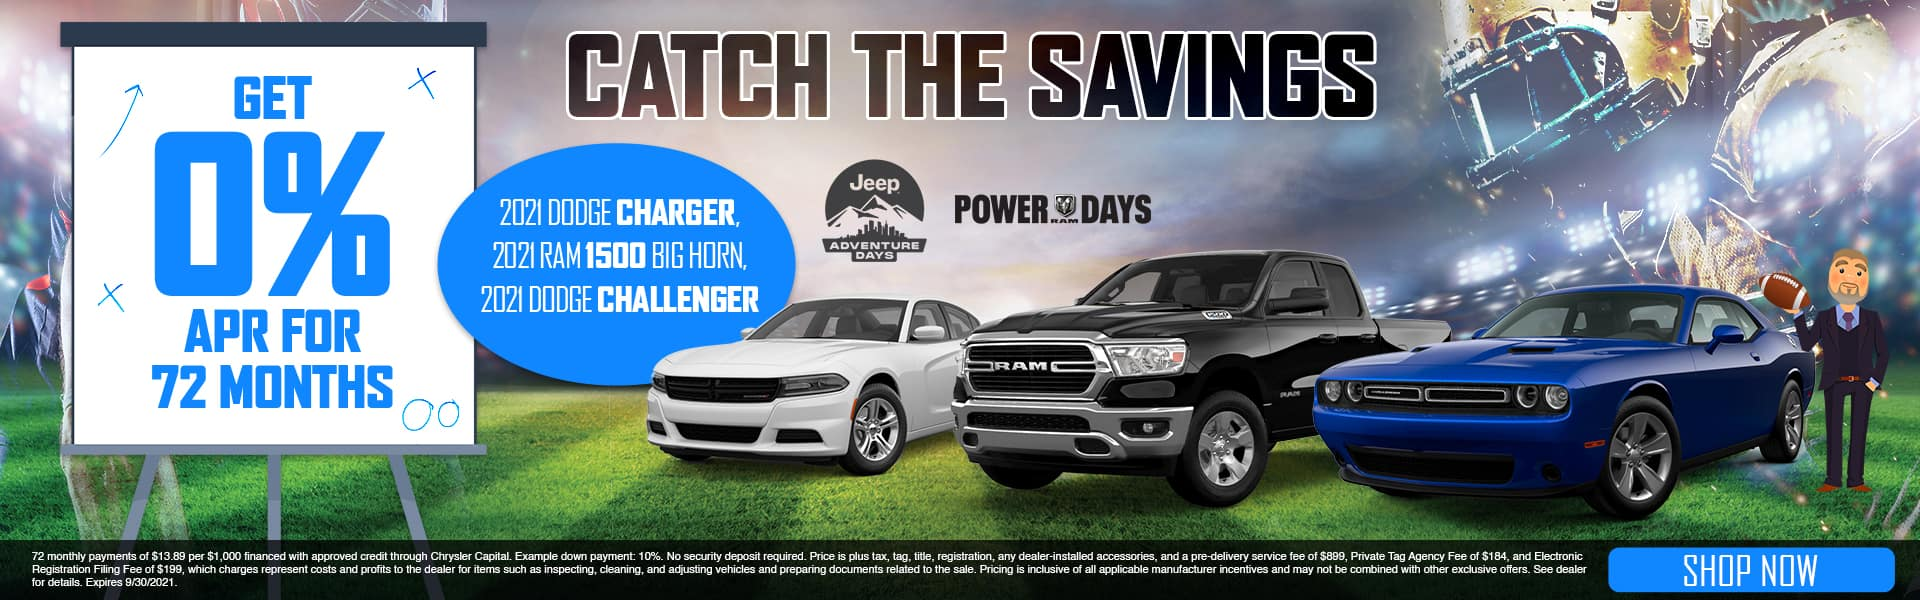 Catch The Savings | Get 0% APR For 72 Months | 2021 Dodge Charger, 2021 RAM 1500 Big Horn, 2021 Dodge Challenger